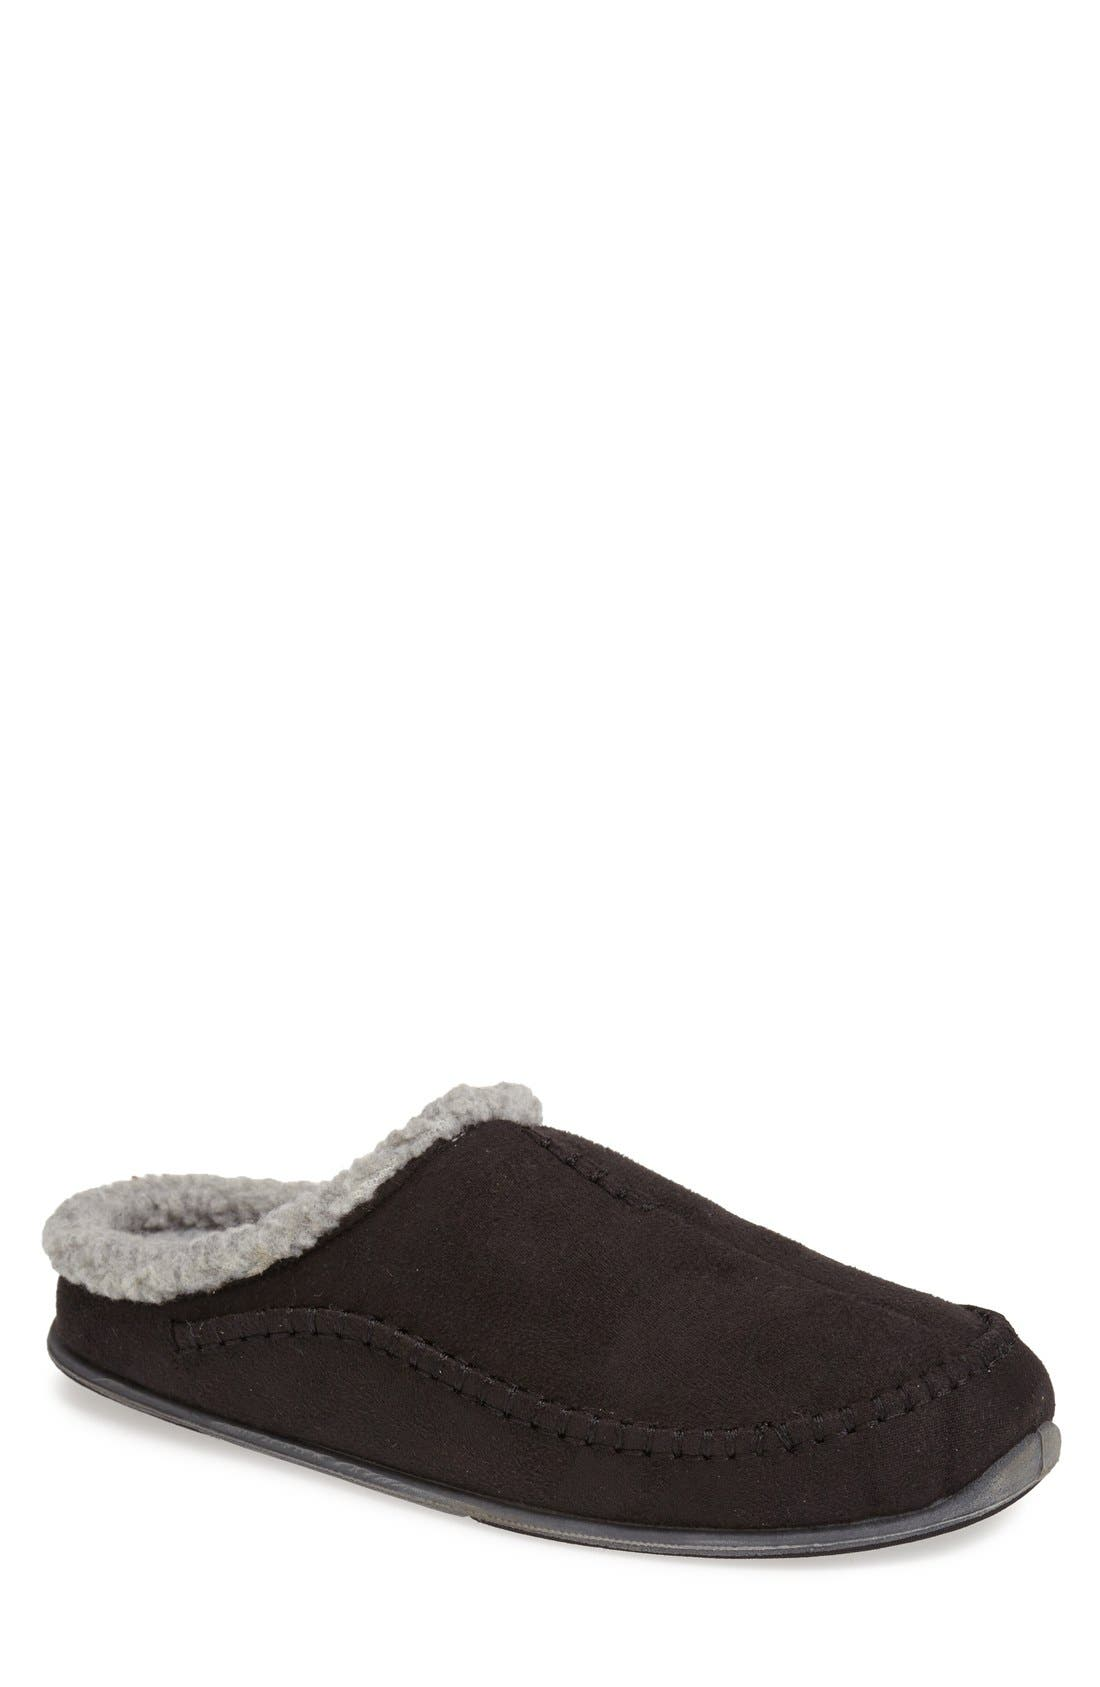 'Nordic' Slipper,                         Main,                         color, Black